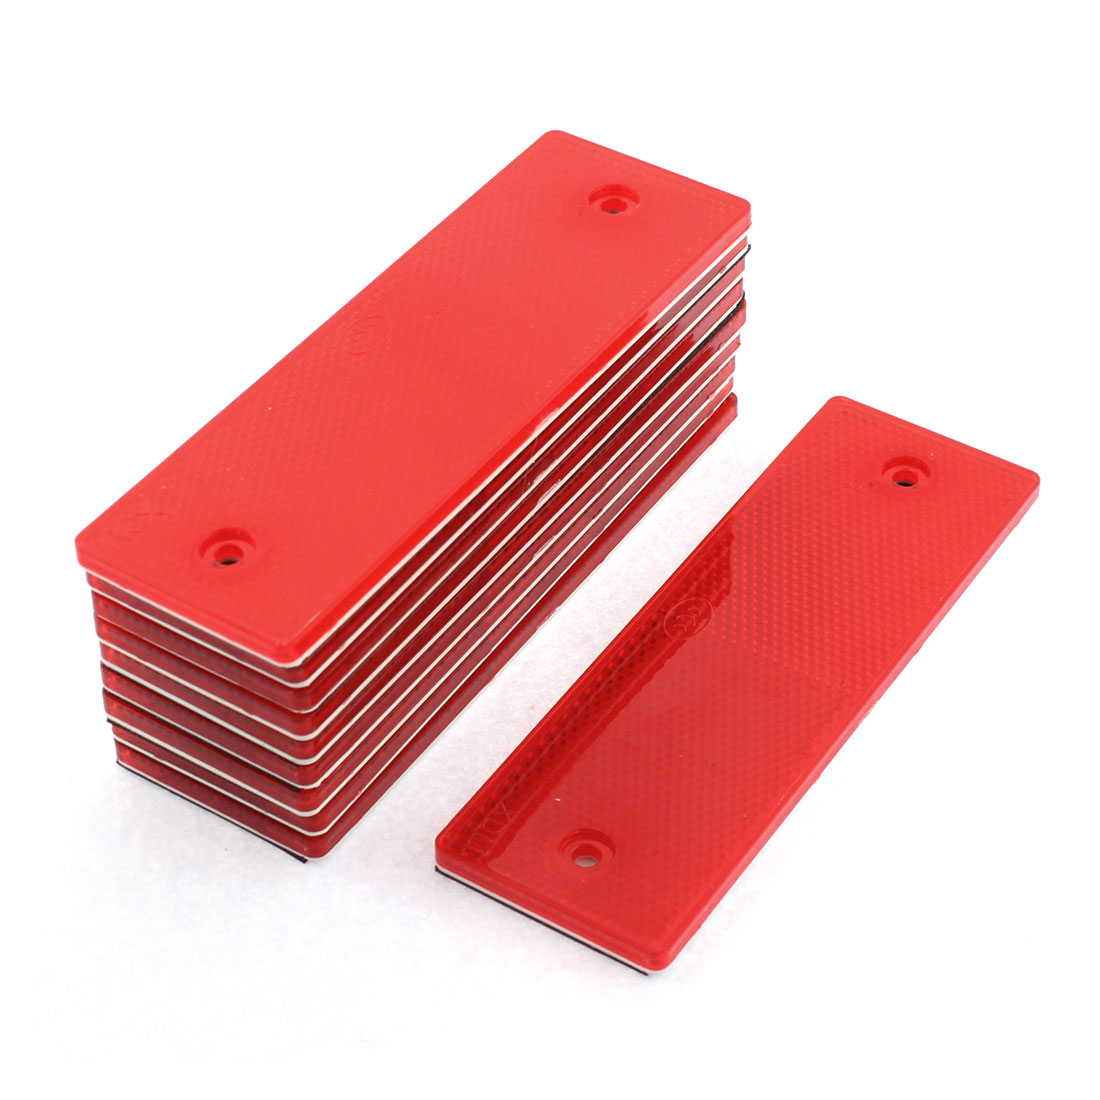 10 Pcs Red Plastic Rectangular Stick-on Car Reflector Reflective Sticker Decor